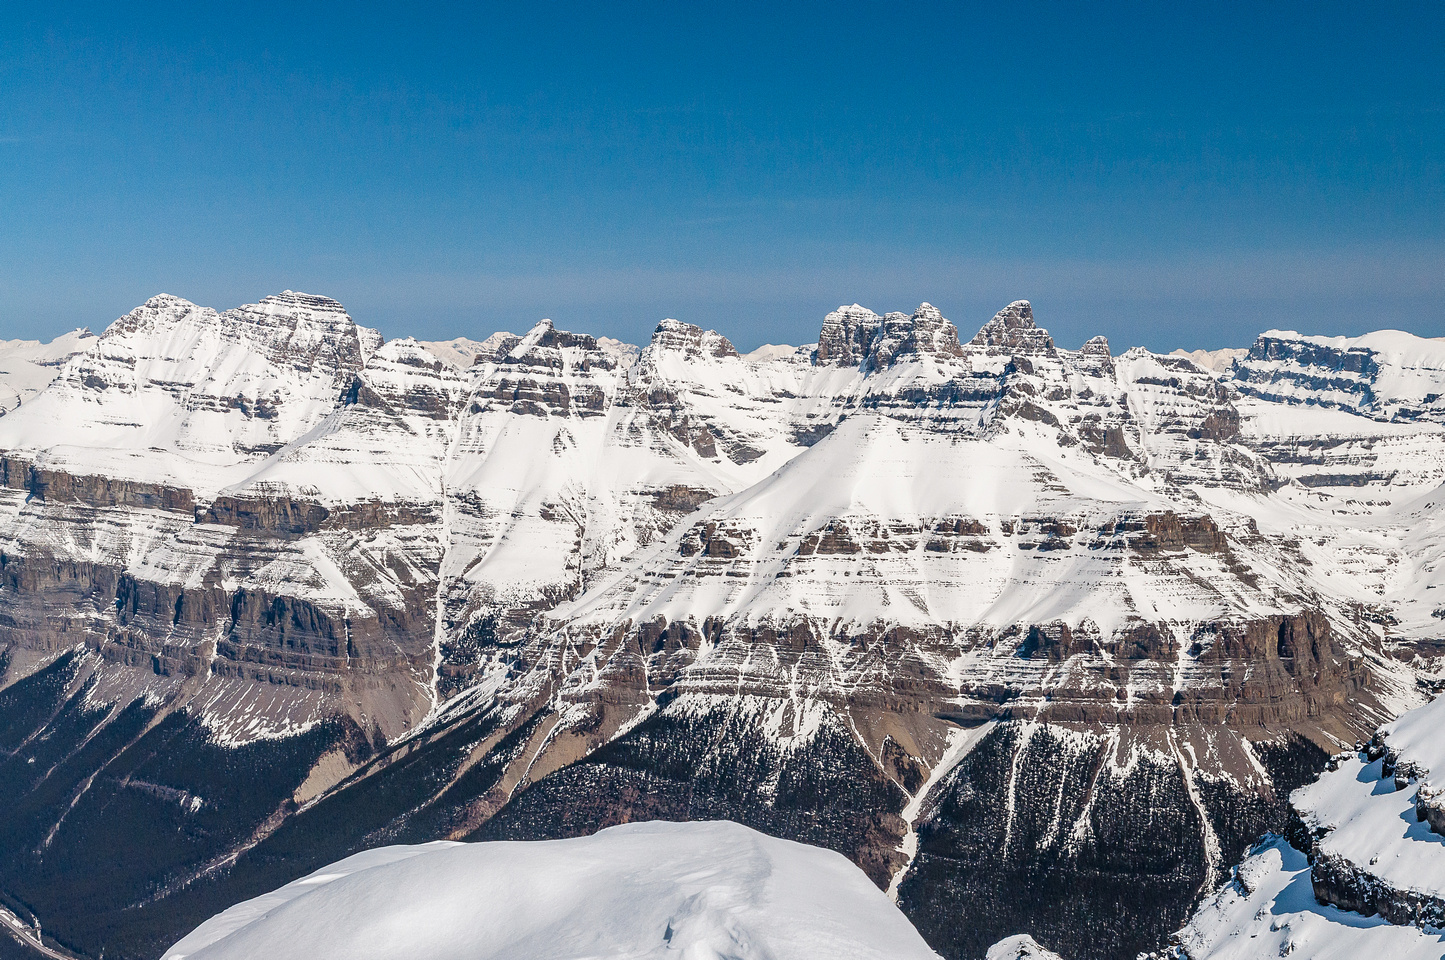 The whole Murchison Massif is quite big and includes many towers and sub summits. Bison Peak is hidden in front of it here.